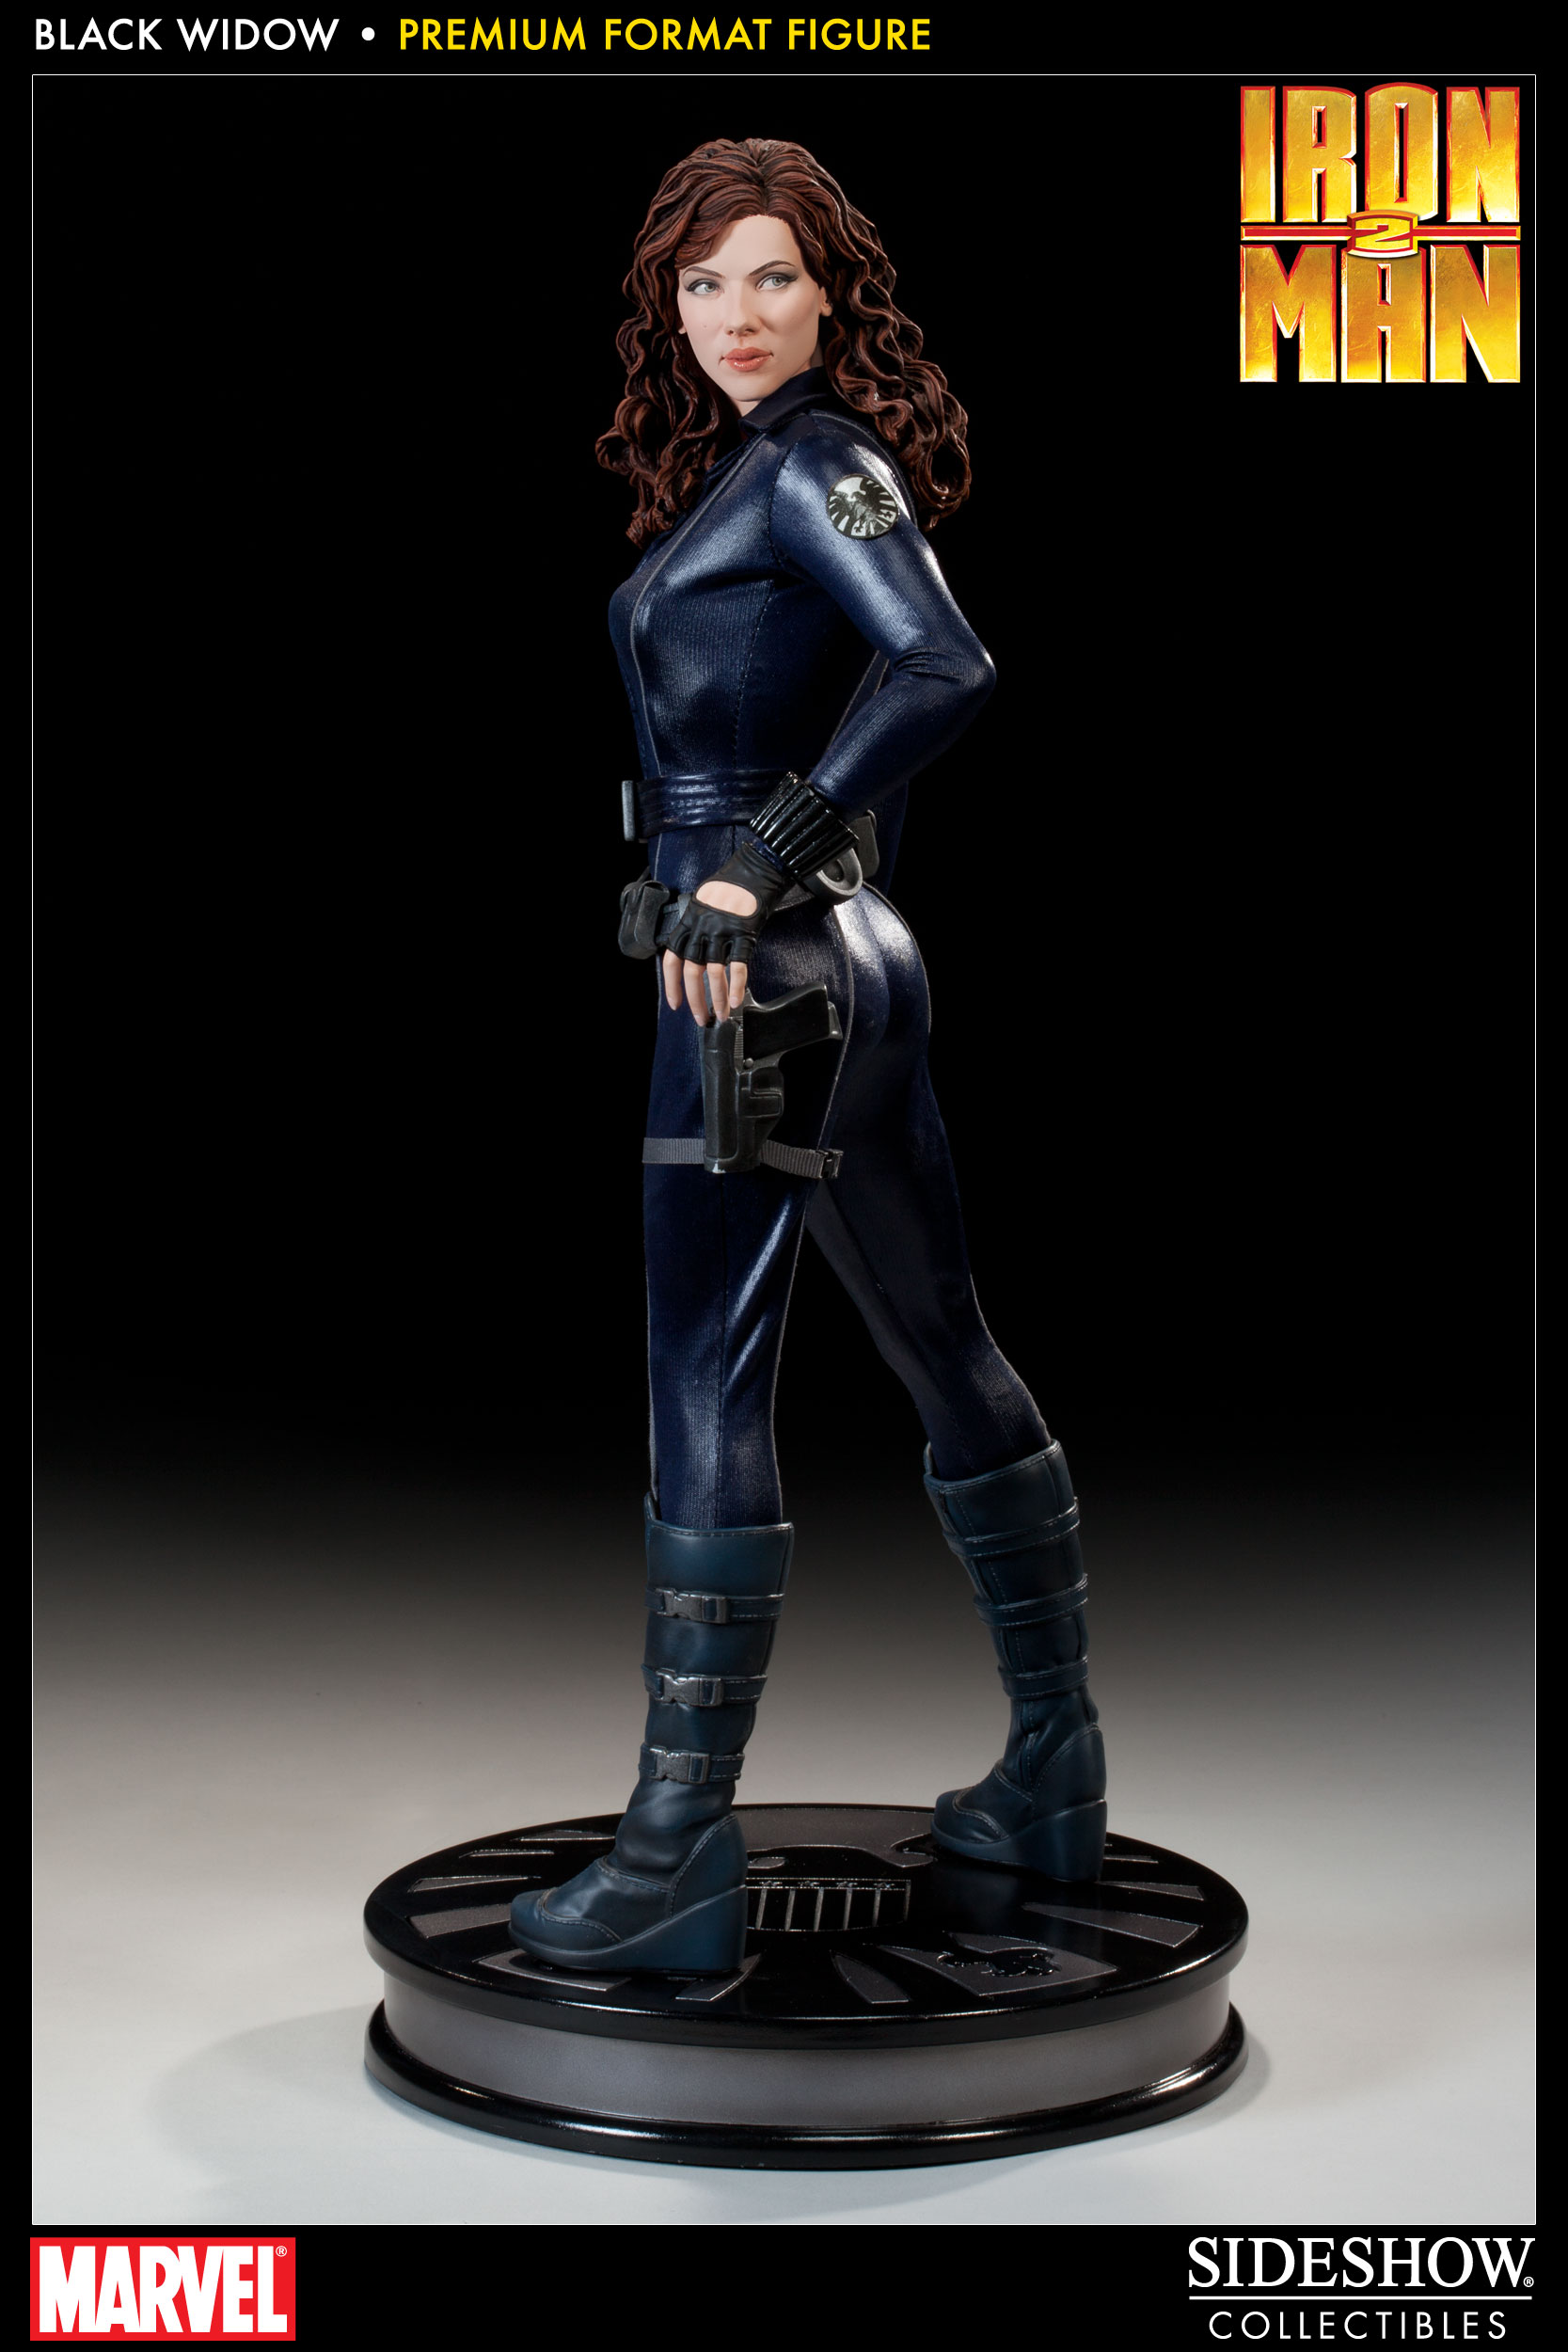 Avengers Black Widow Premium Format Scarlett Johansson Figure by Sideshow Collectibles